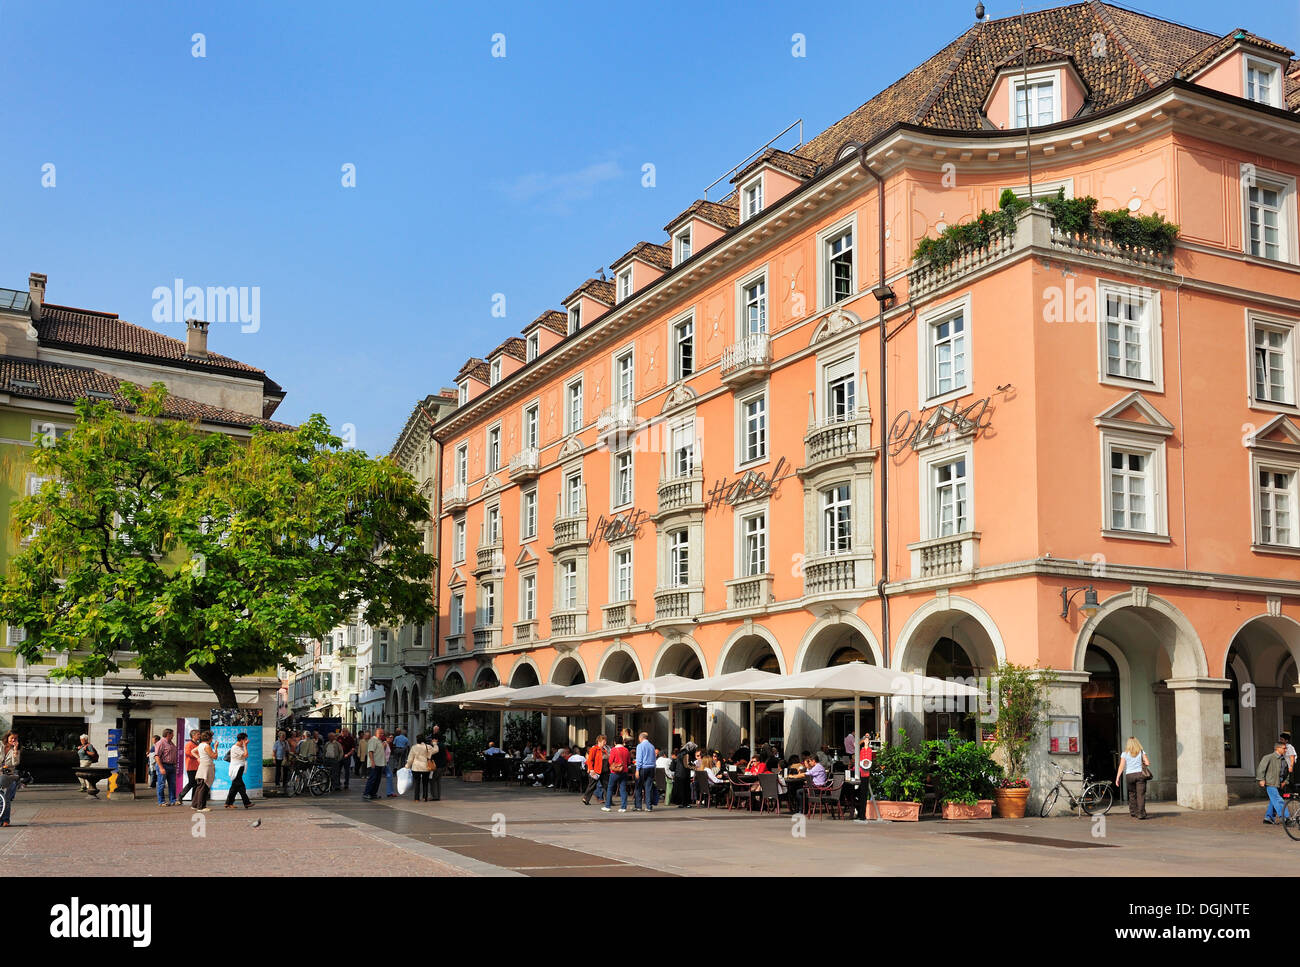 Hotel Citta on the Piazza Walther, Bolzano, South Tyrol, Tyrol, Italy, Europe - Stock Image